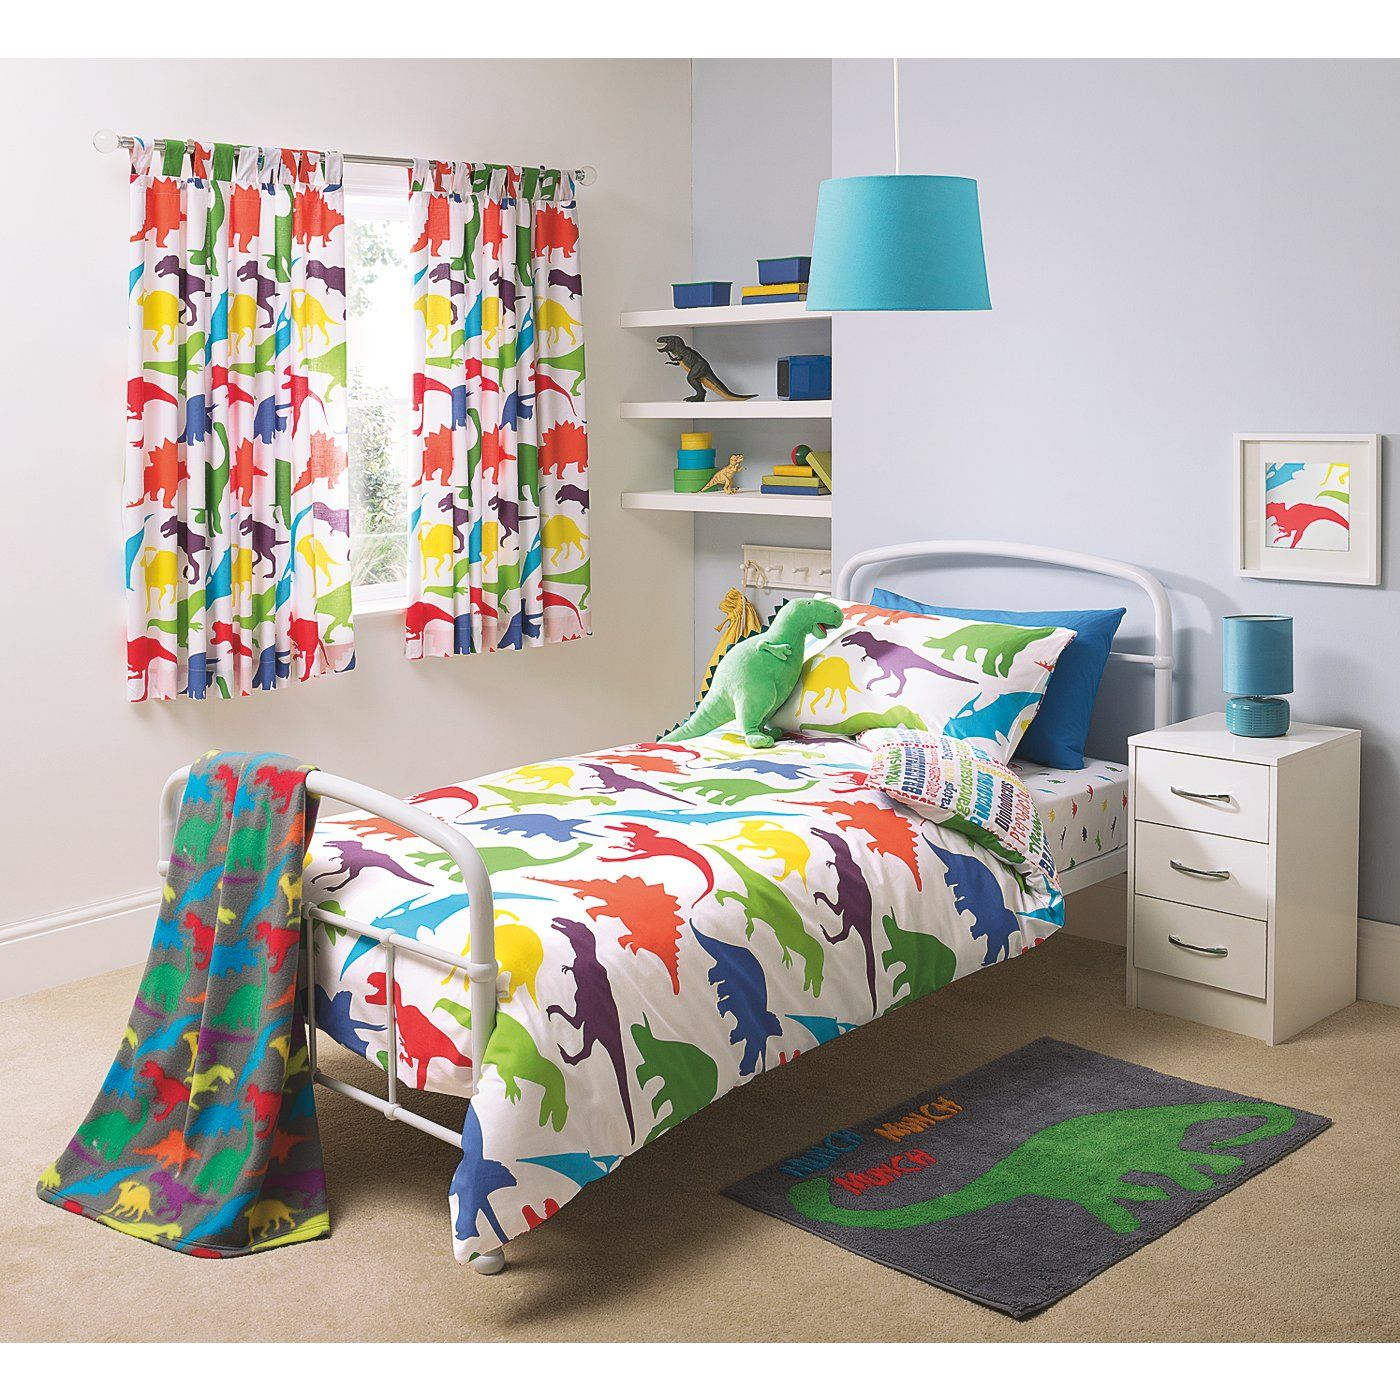 dinosaur bedroom bedroom sets bedrooms kids room bedding duvet ranges